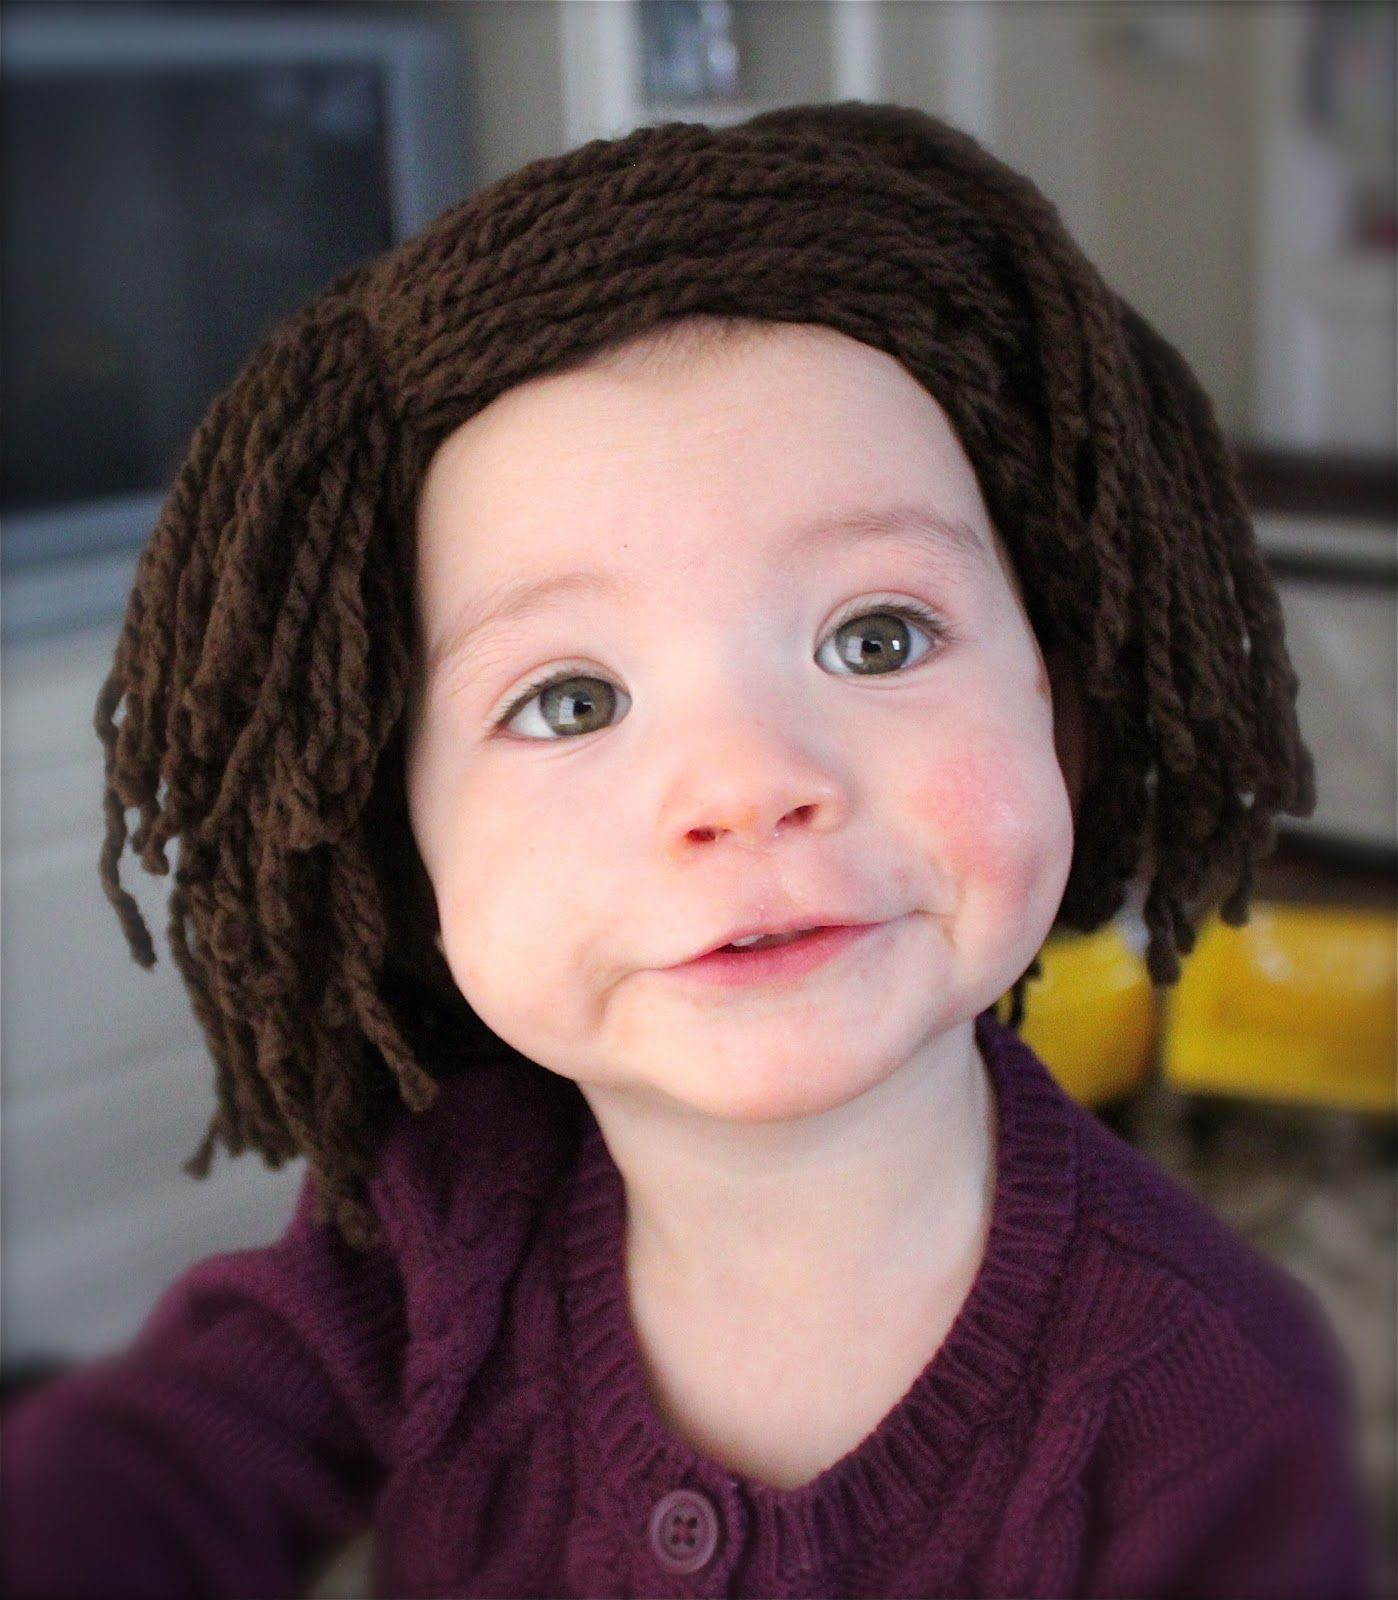 Too funny, a crocheted wig for bald babies ;) Would be great for ...